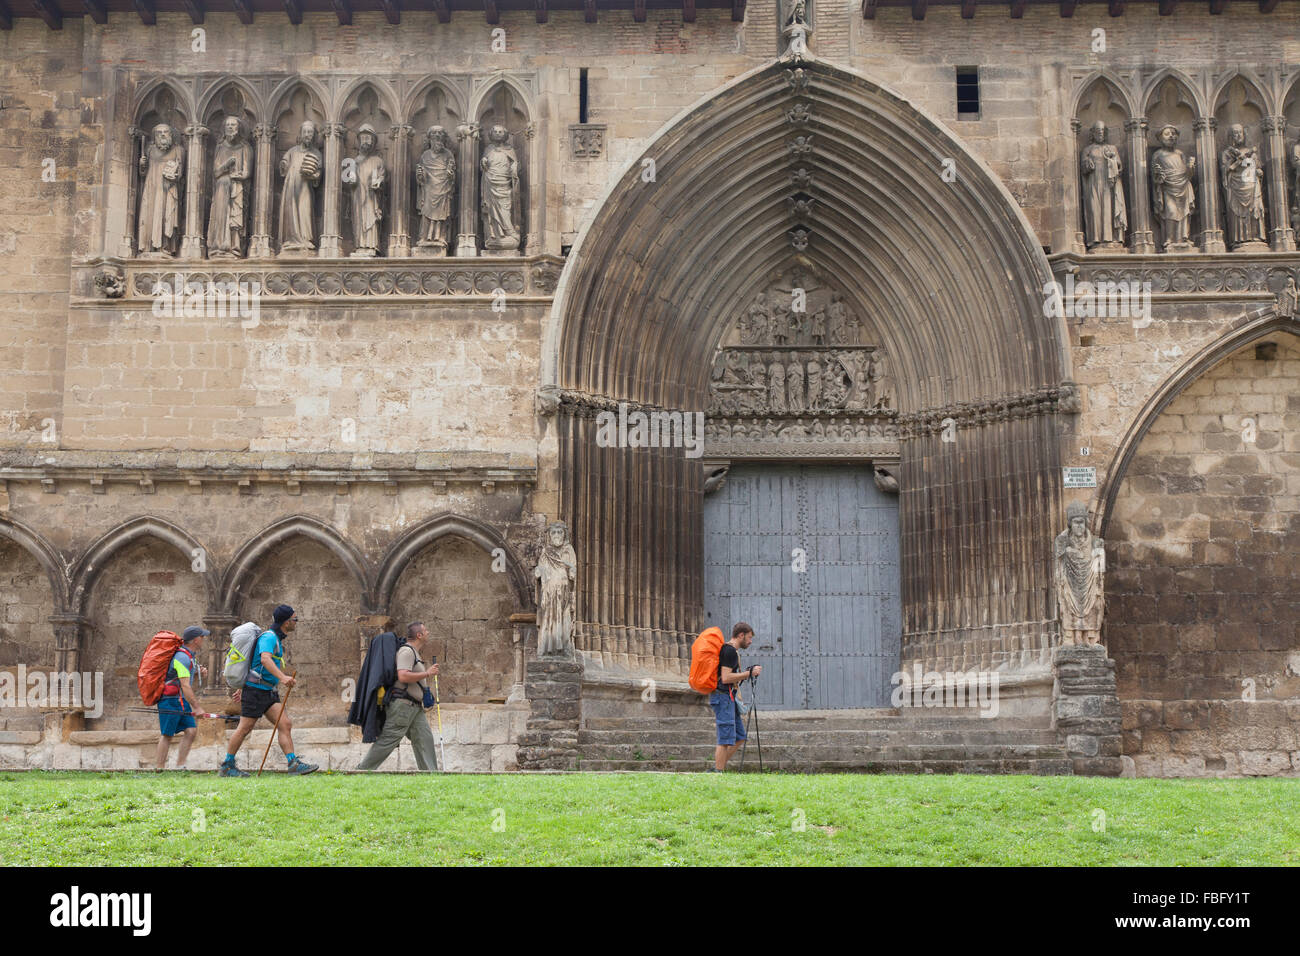 Pilgrims passing the Church of Holy Sepulchre as they enter the village of Estella-Lizarra - Navarre, Spain. - Stock Image